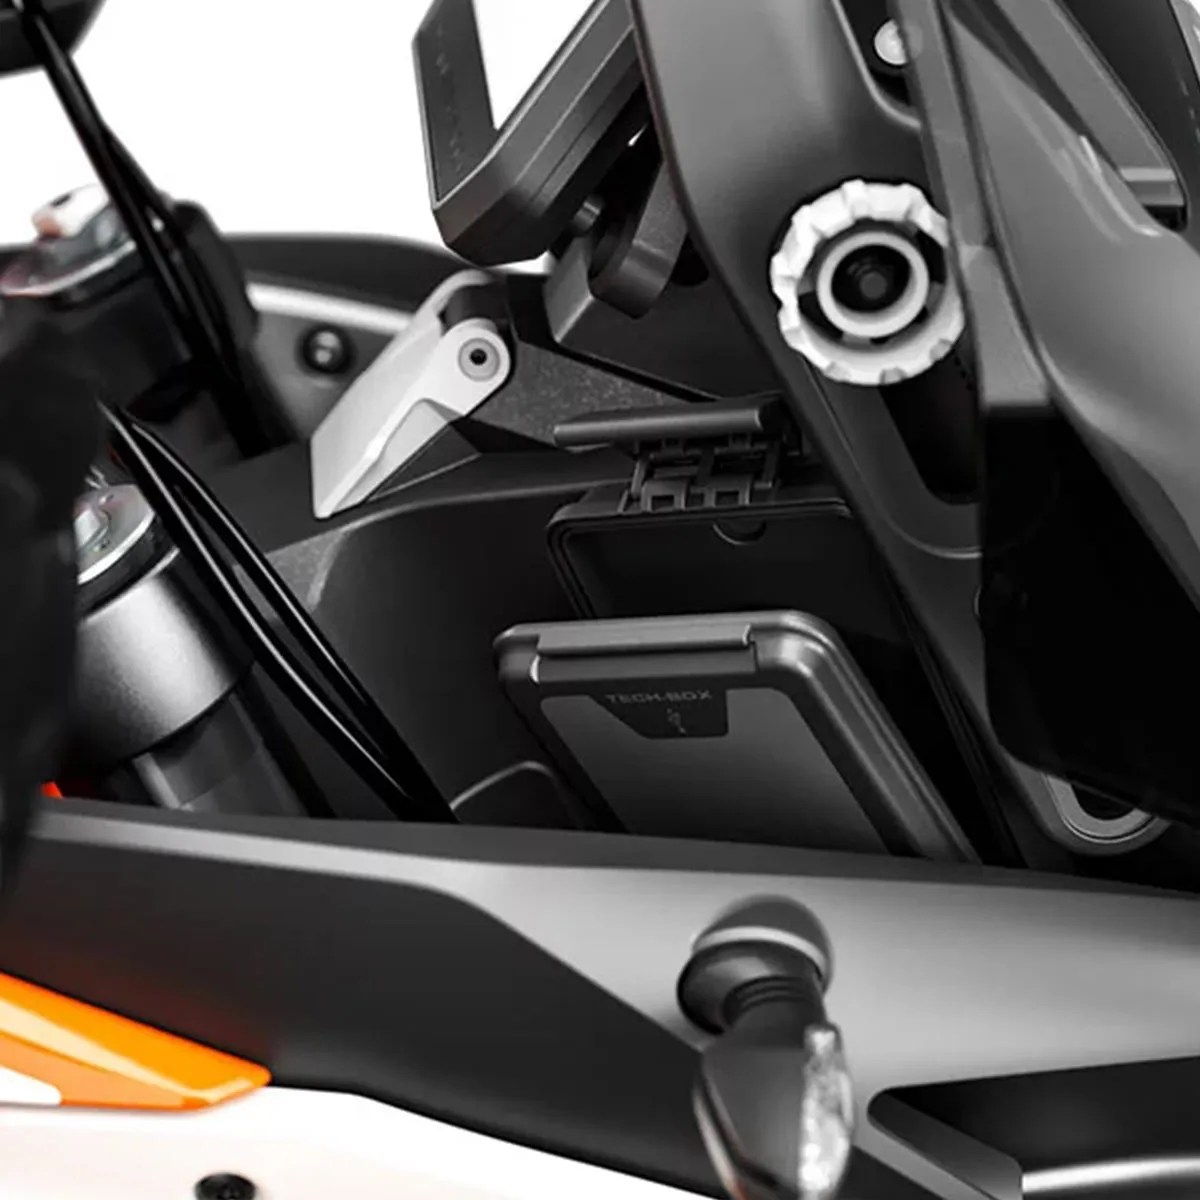 poche-pour-portable-USB-KTM-1290-Super-Adventure-R-2020